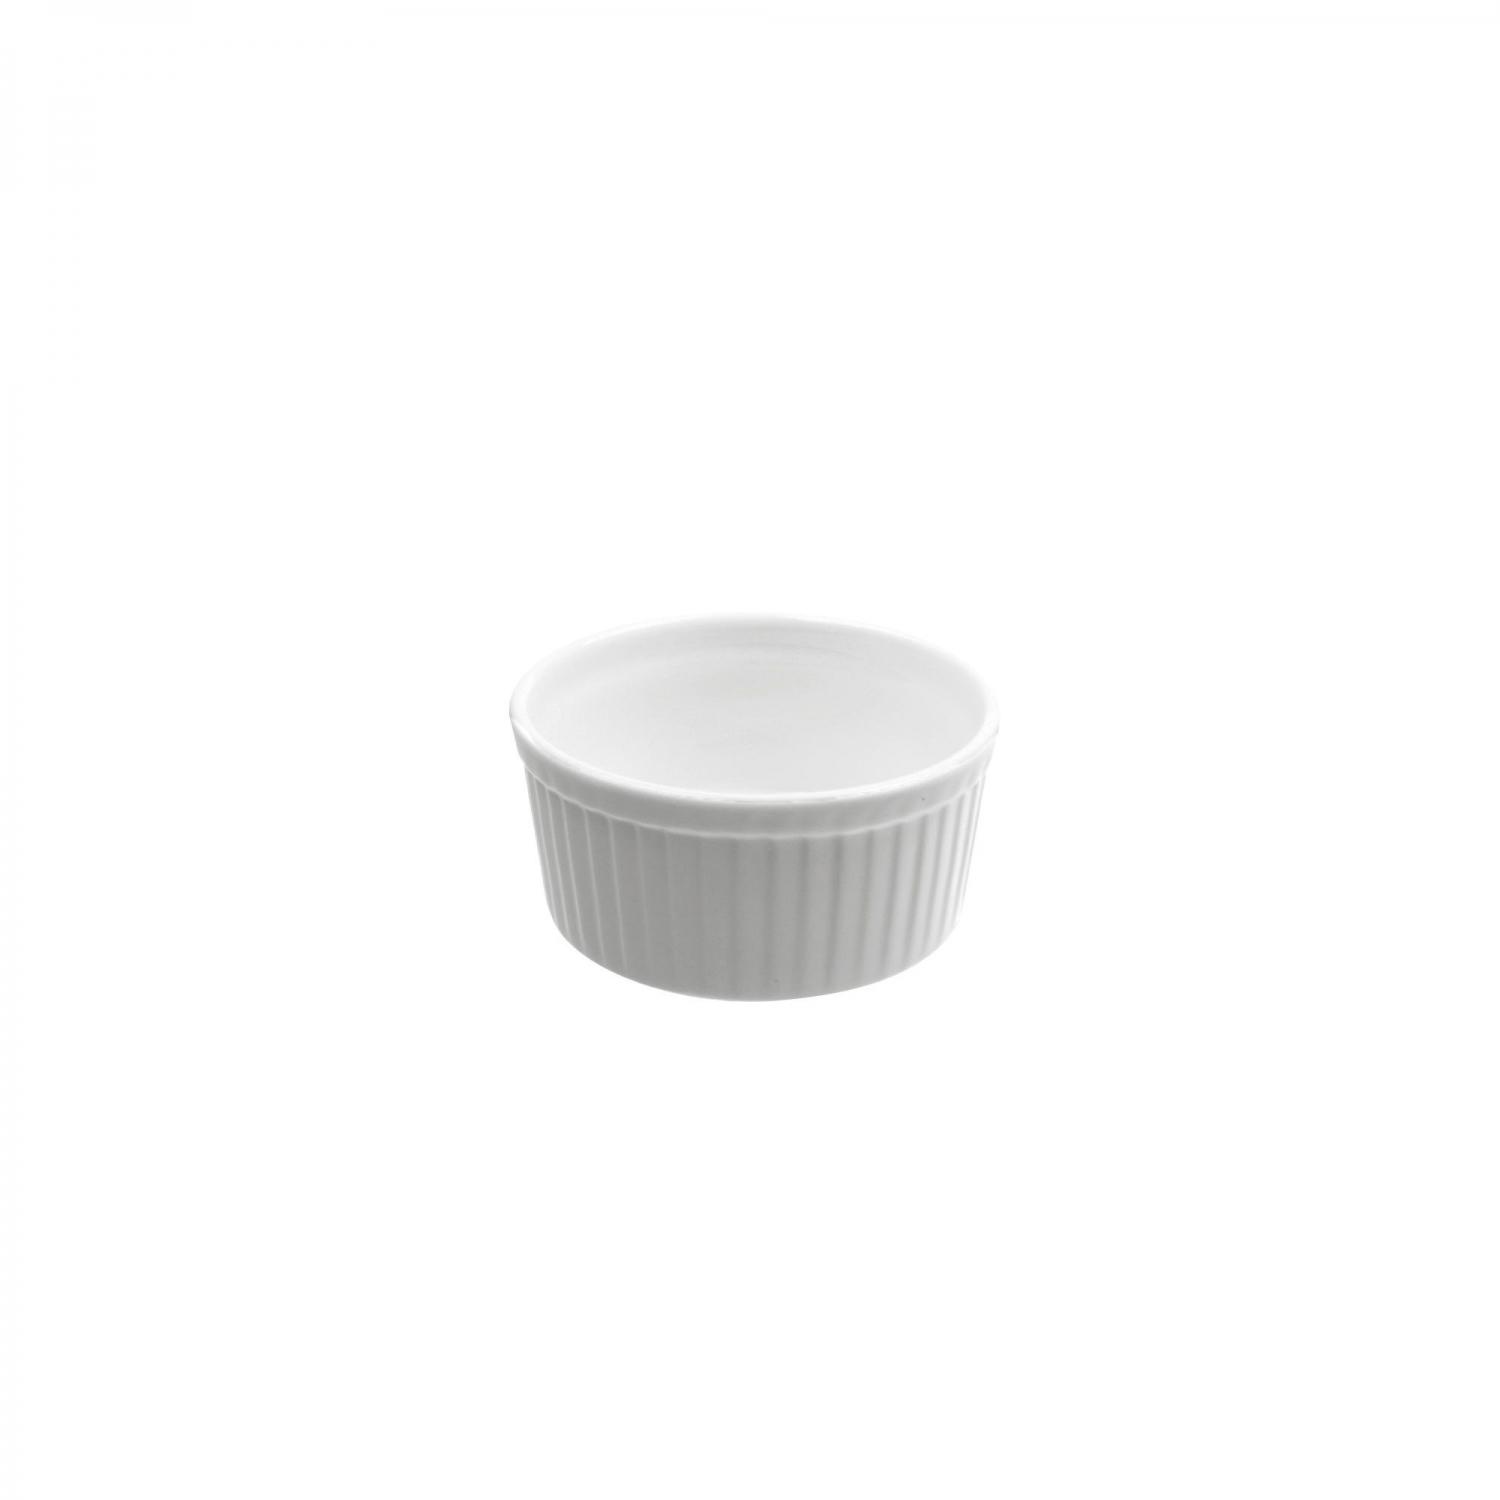 10 Strawberry Street WTR-3SUF Whittier Ramekin 3 oz.